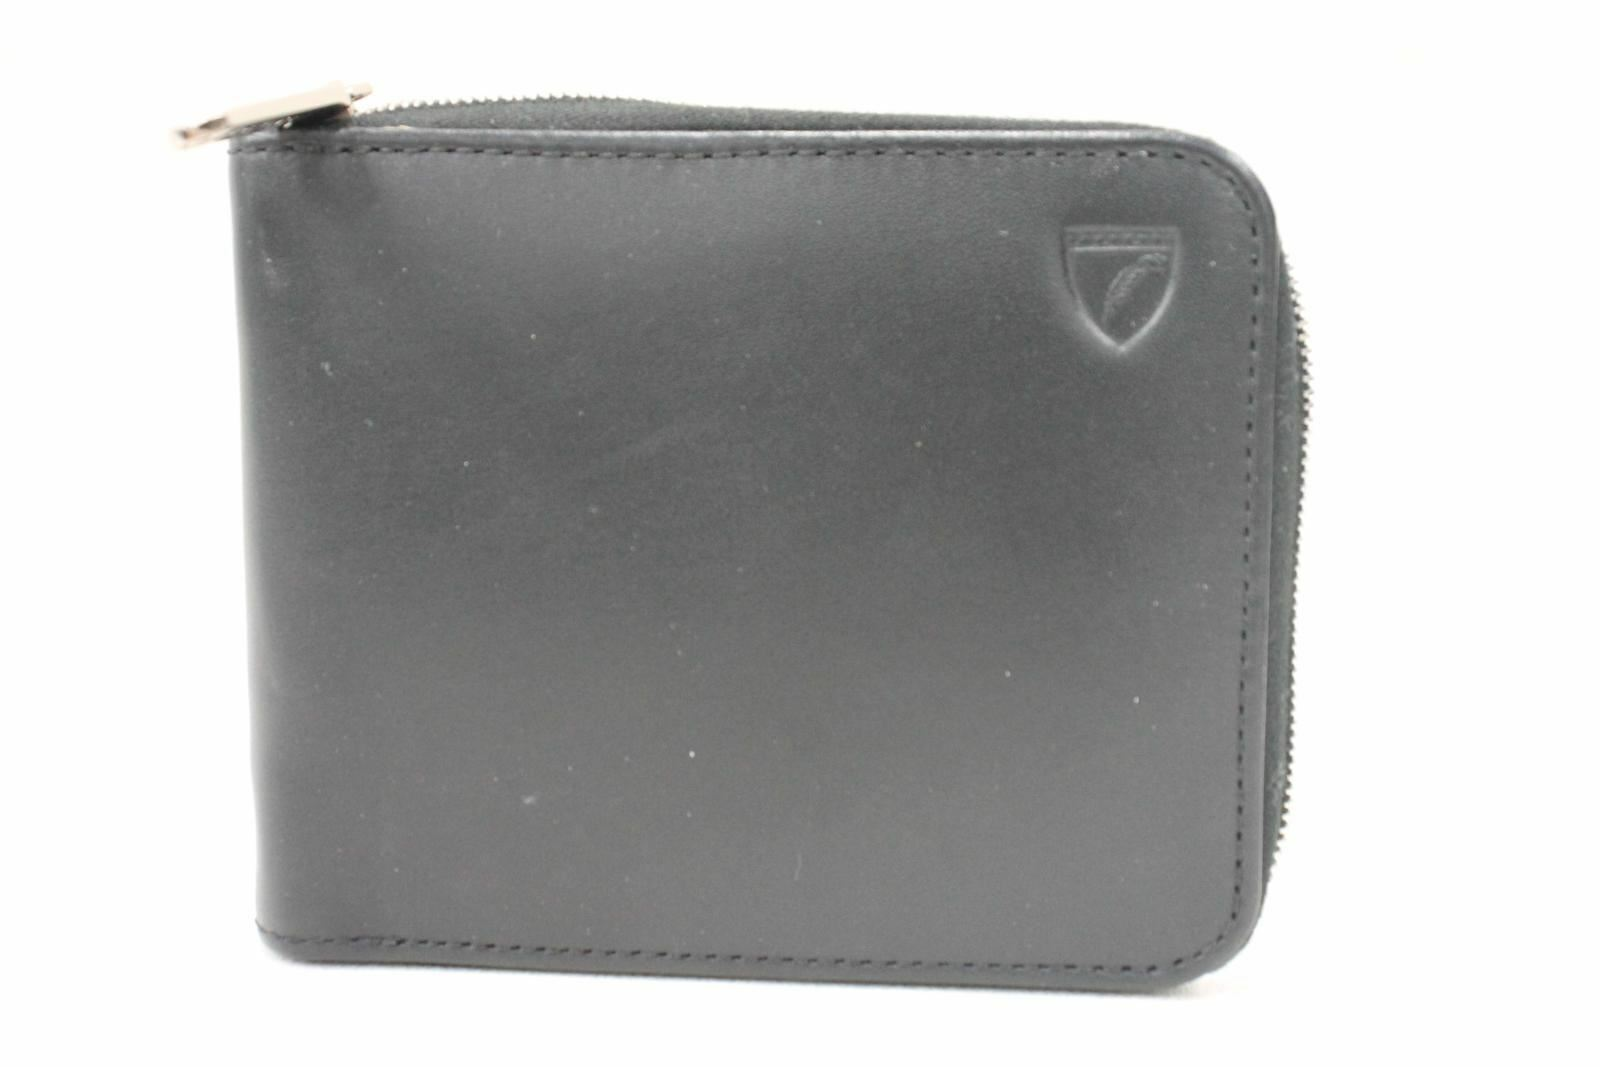 ASPINAL OF LONDON Smooth Dark Black Leather Zip Men's Bifold Coin Wallet NEW